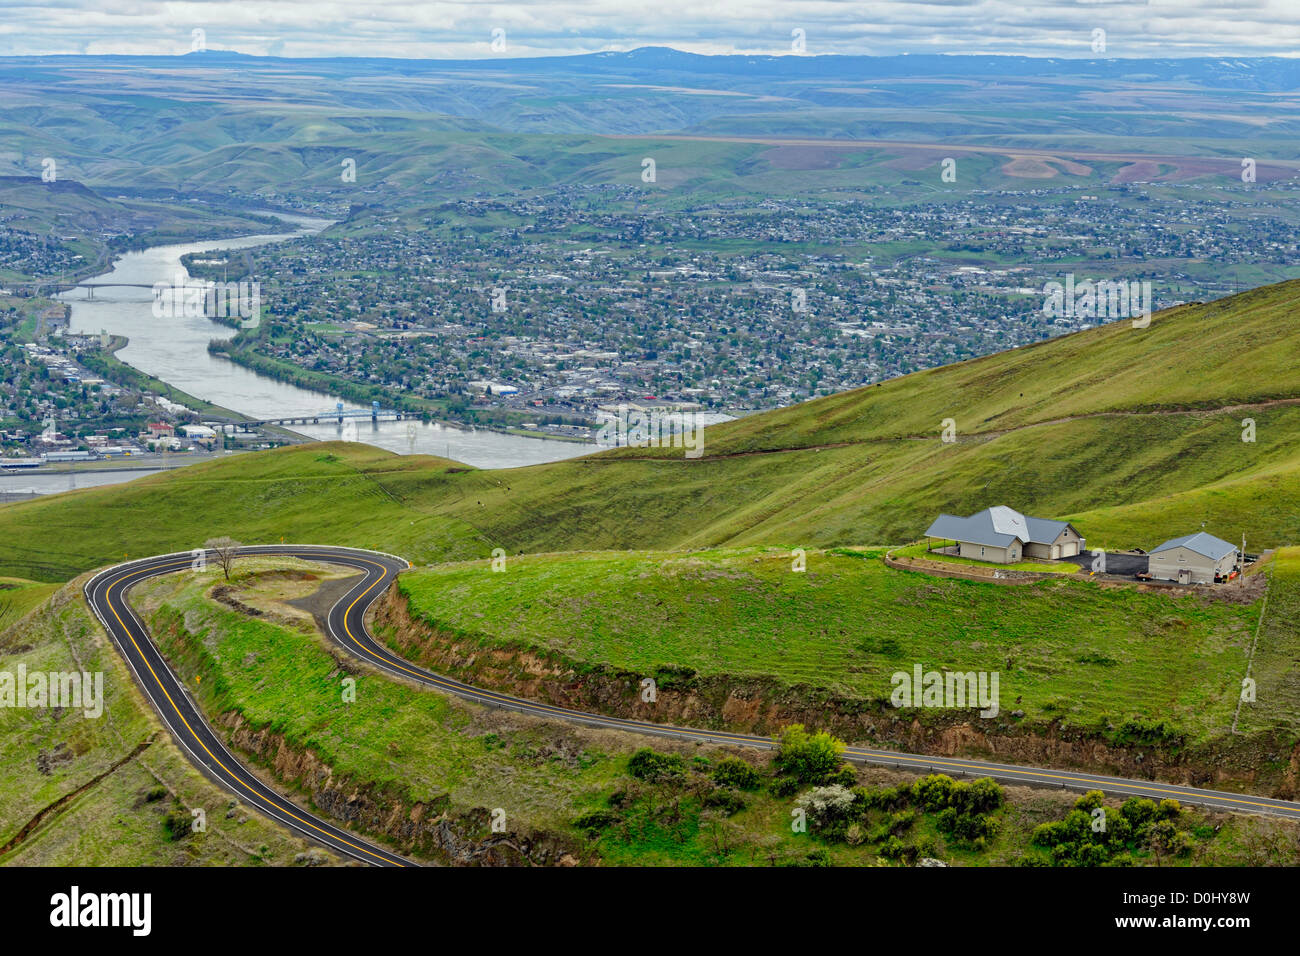 The Snake River with Lewiston (ID) and Clarkston (WA) from the Lewiston Hill, Lewiston (hill), Idaho, USA - Stock Image